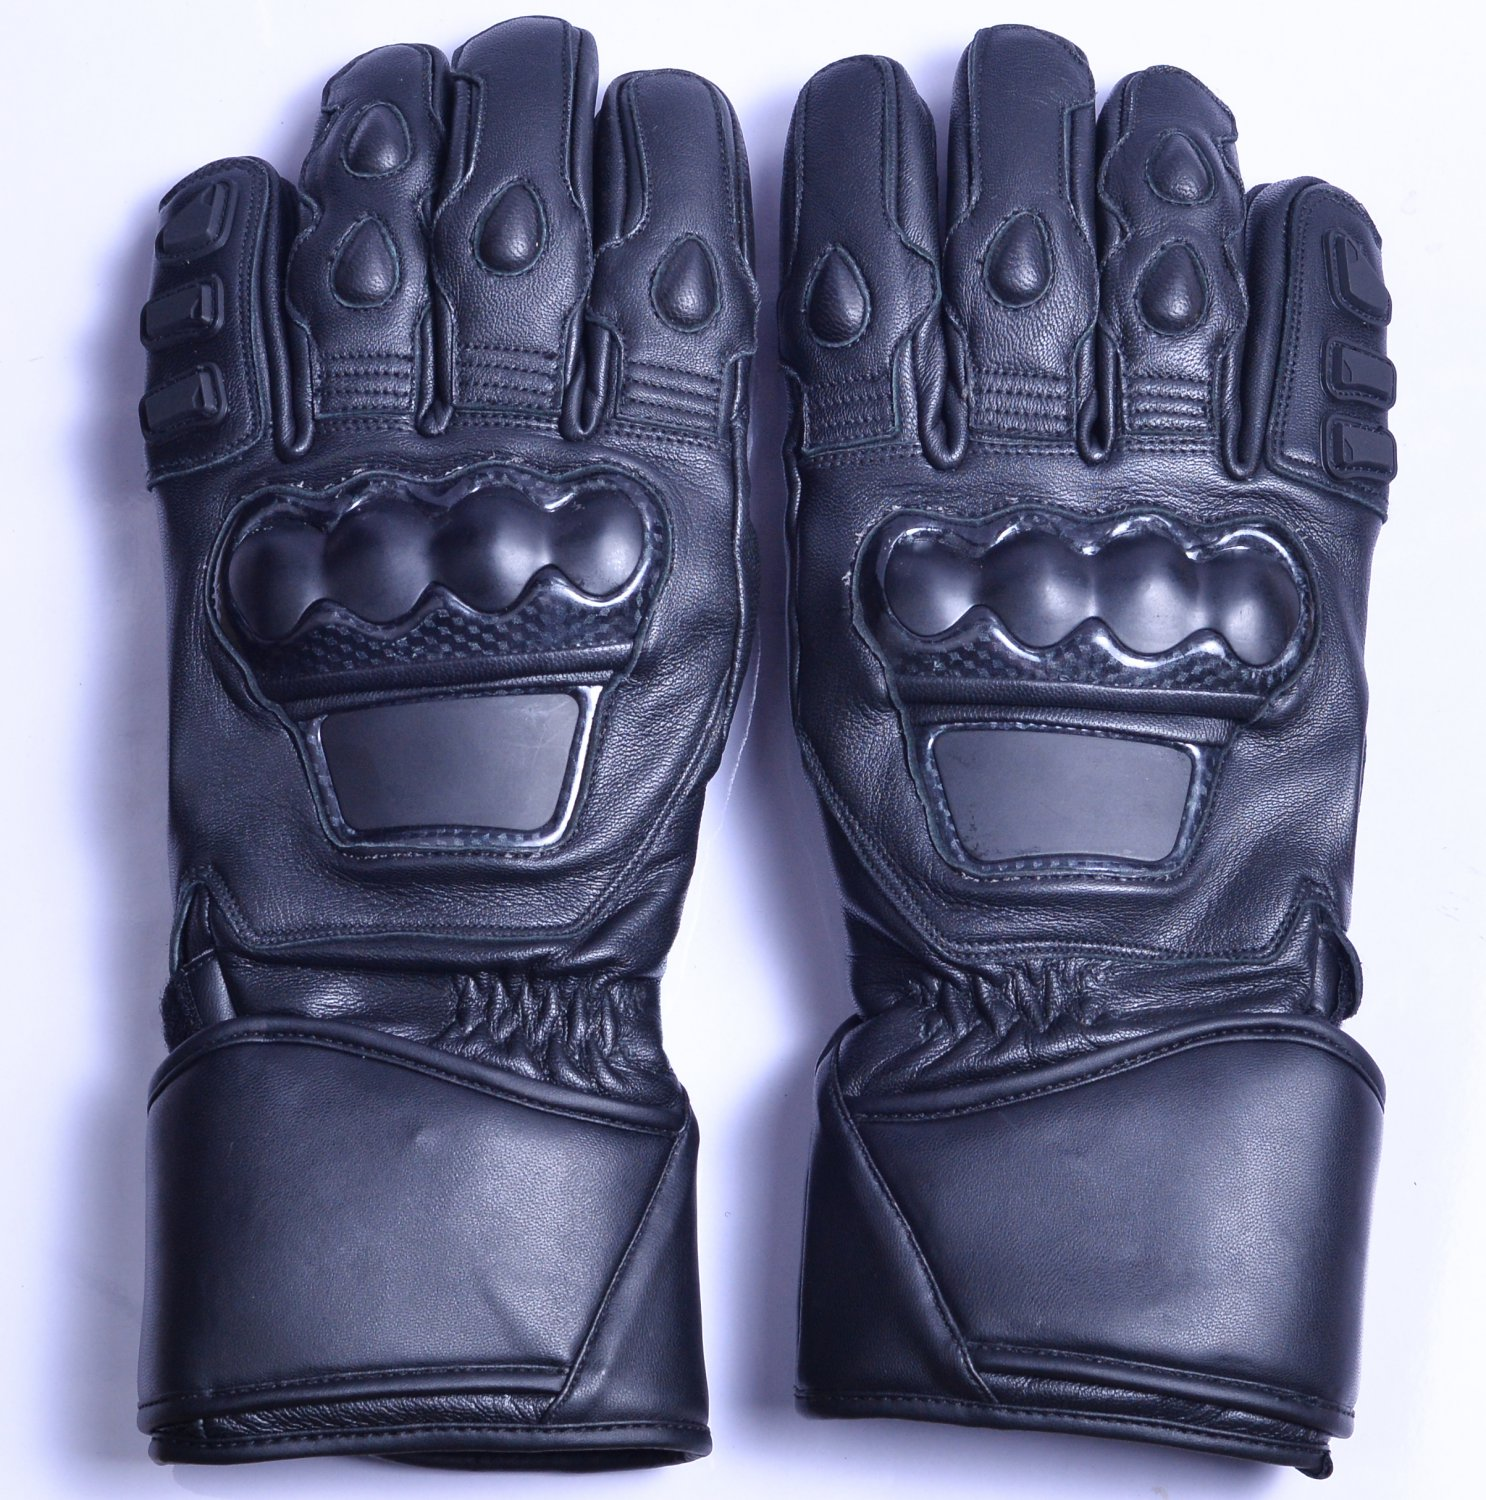 MOTOR-BIKE RACING Safety GLOVES Genuine Leather Black Color Size 4XL